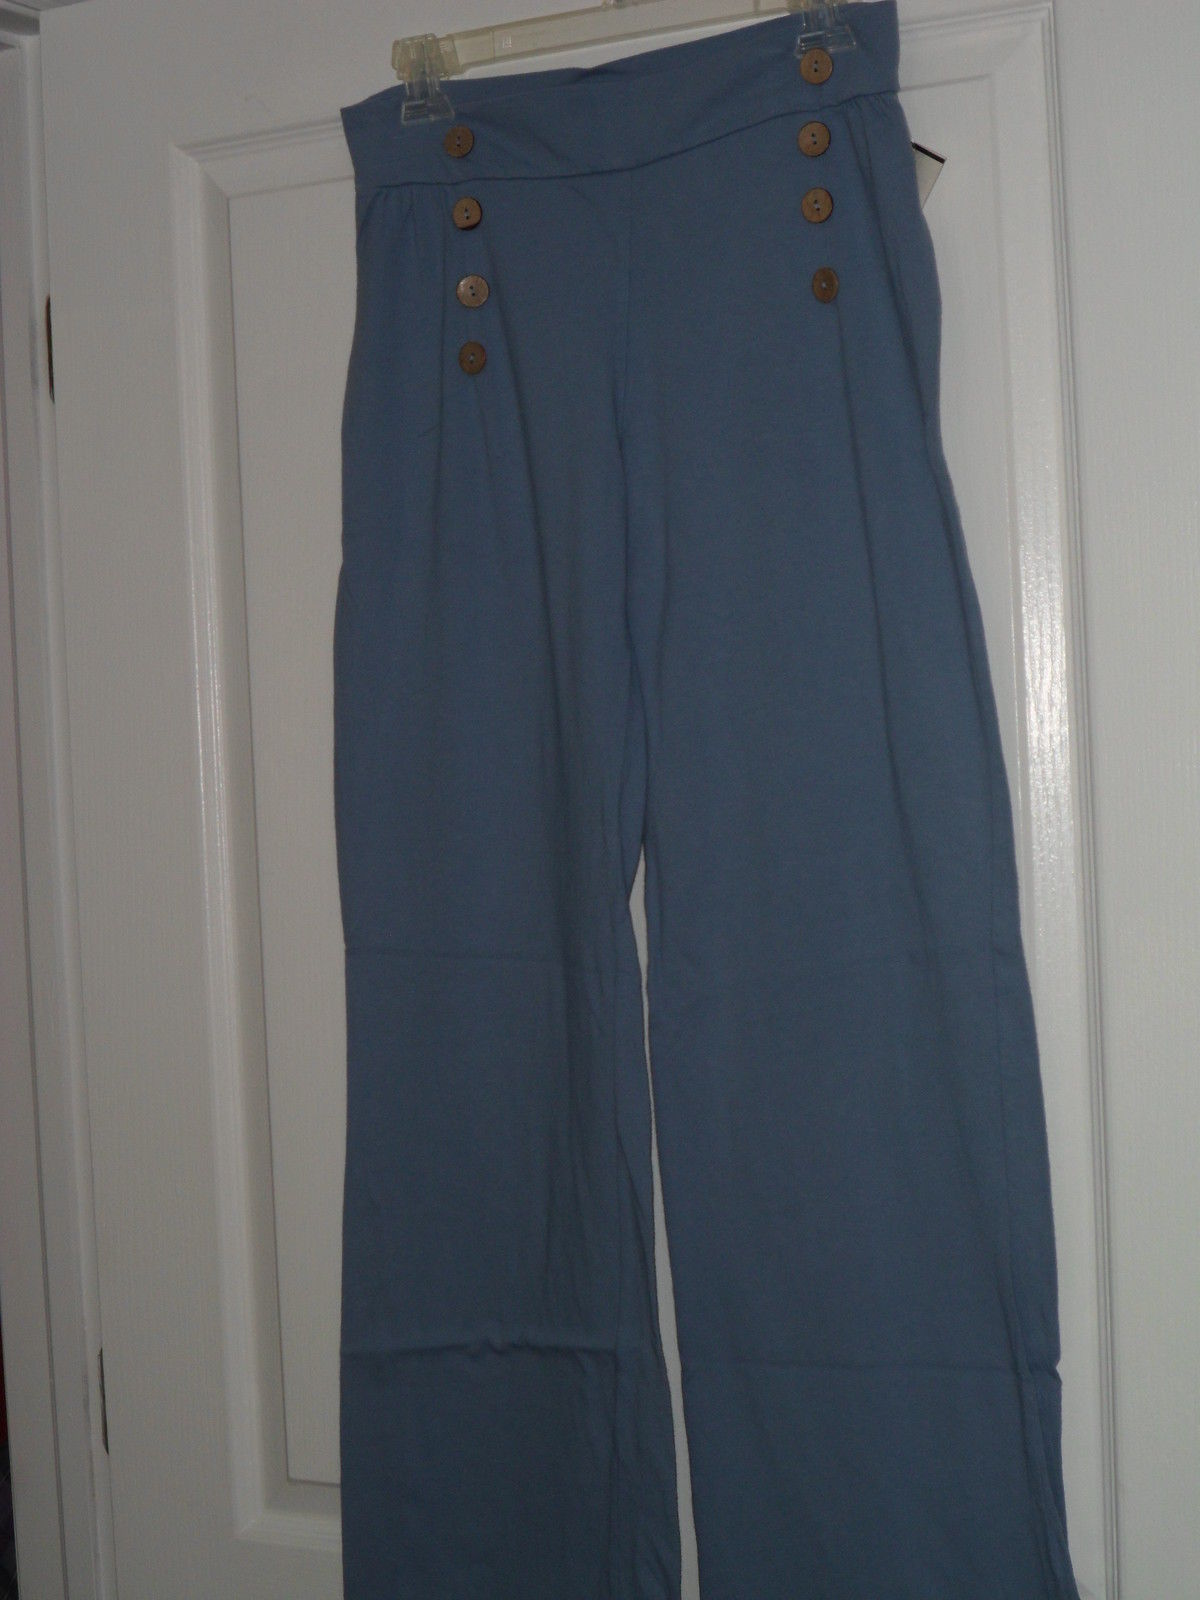 SPIRIT LADIES KNIT PANTS SIZE XL 16  BLUE MADE IN USA NWT - $23.19 CAD